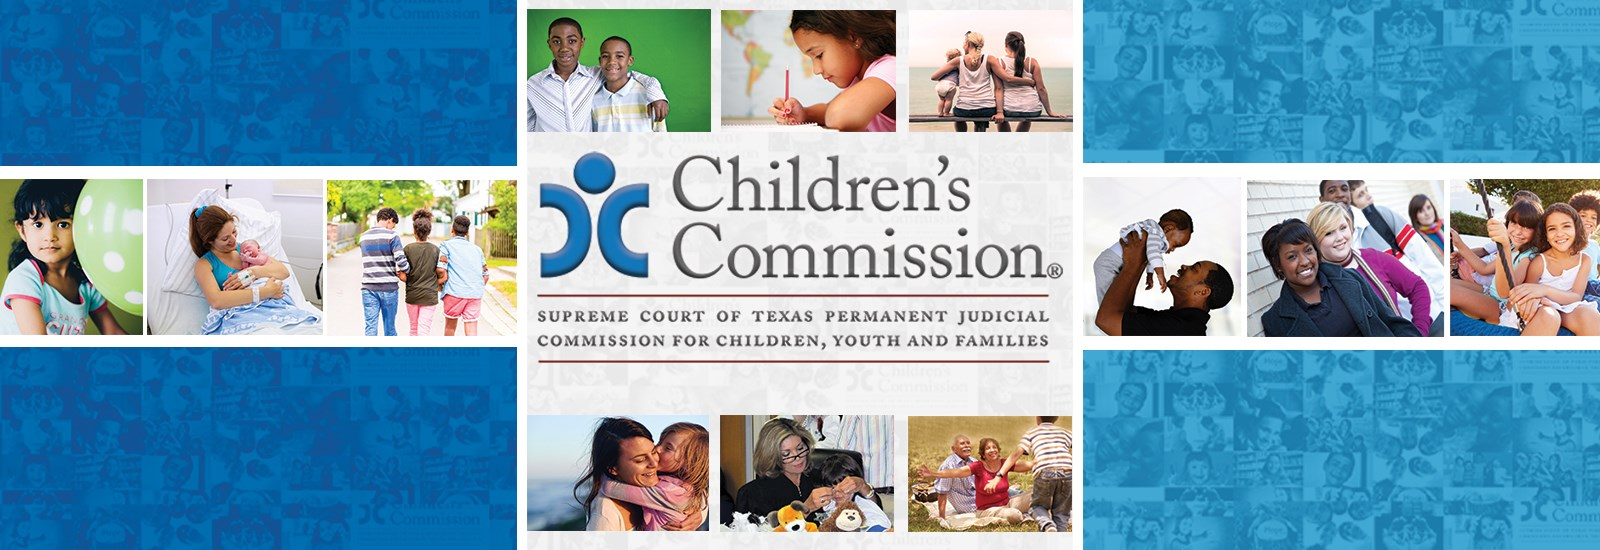 Children's Commission static banner; pictures of children, youth and families; Children's Commission logo